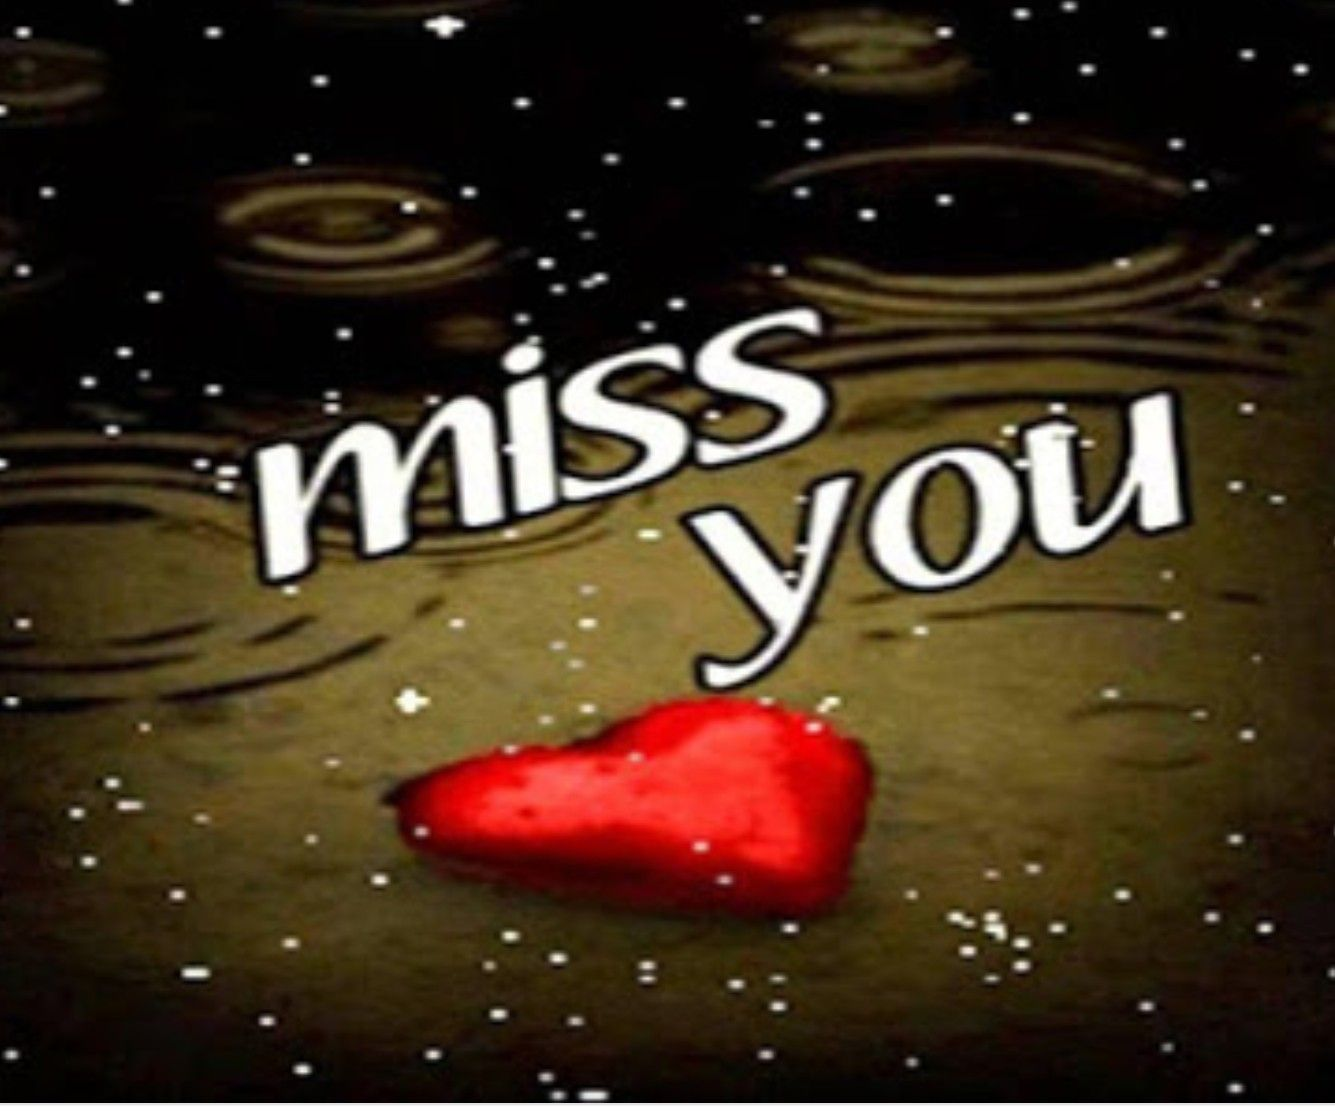 Yes I Do Beautiful Im Back To Work And Missing You Like Crazy I M So Ready To Marry You And Spend The Rest I Miss You Wallpaper Miss You Images Miss